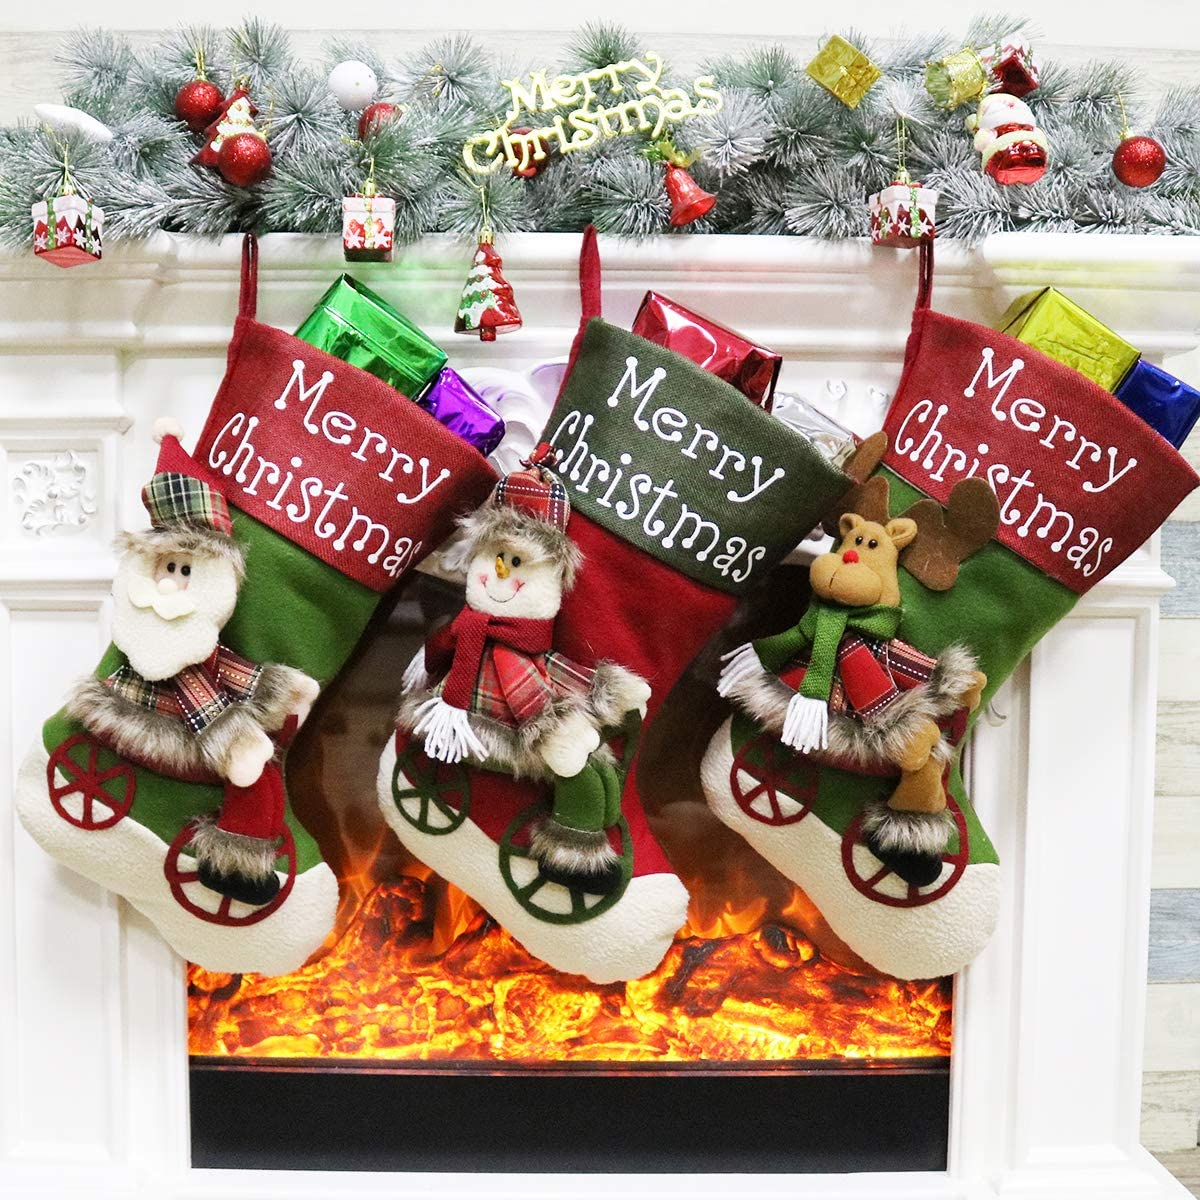 Aitey Christmas Stocking, Set of 3 Santa, Snowman, Reindeer, Xmas Character 3D Plush with Faux Fur Cuff Christmas Decorations and Party Accessory 3